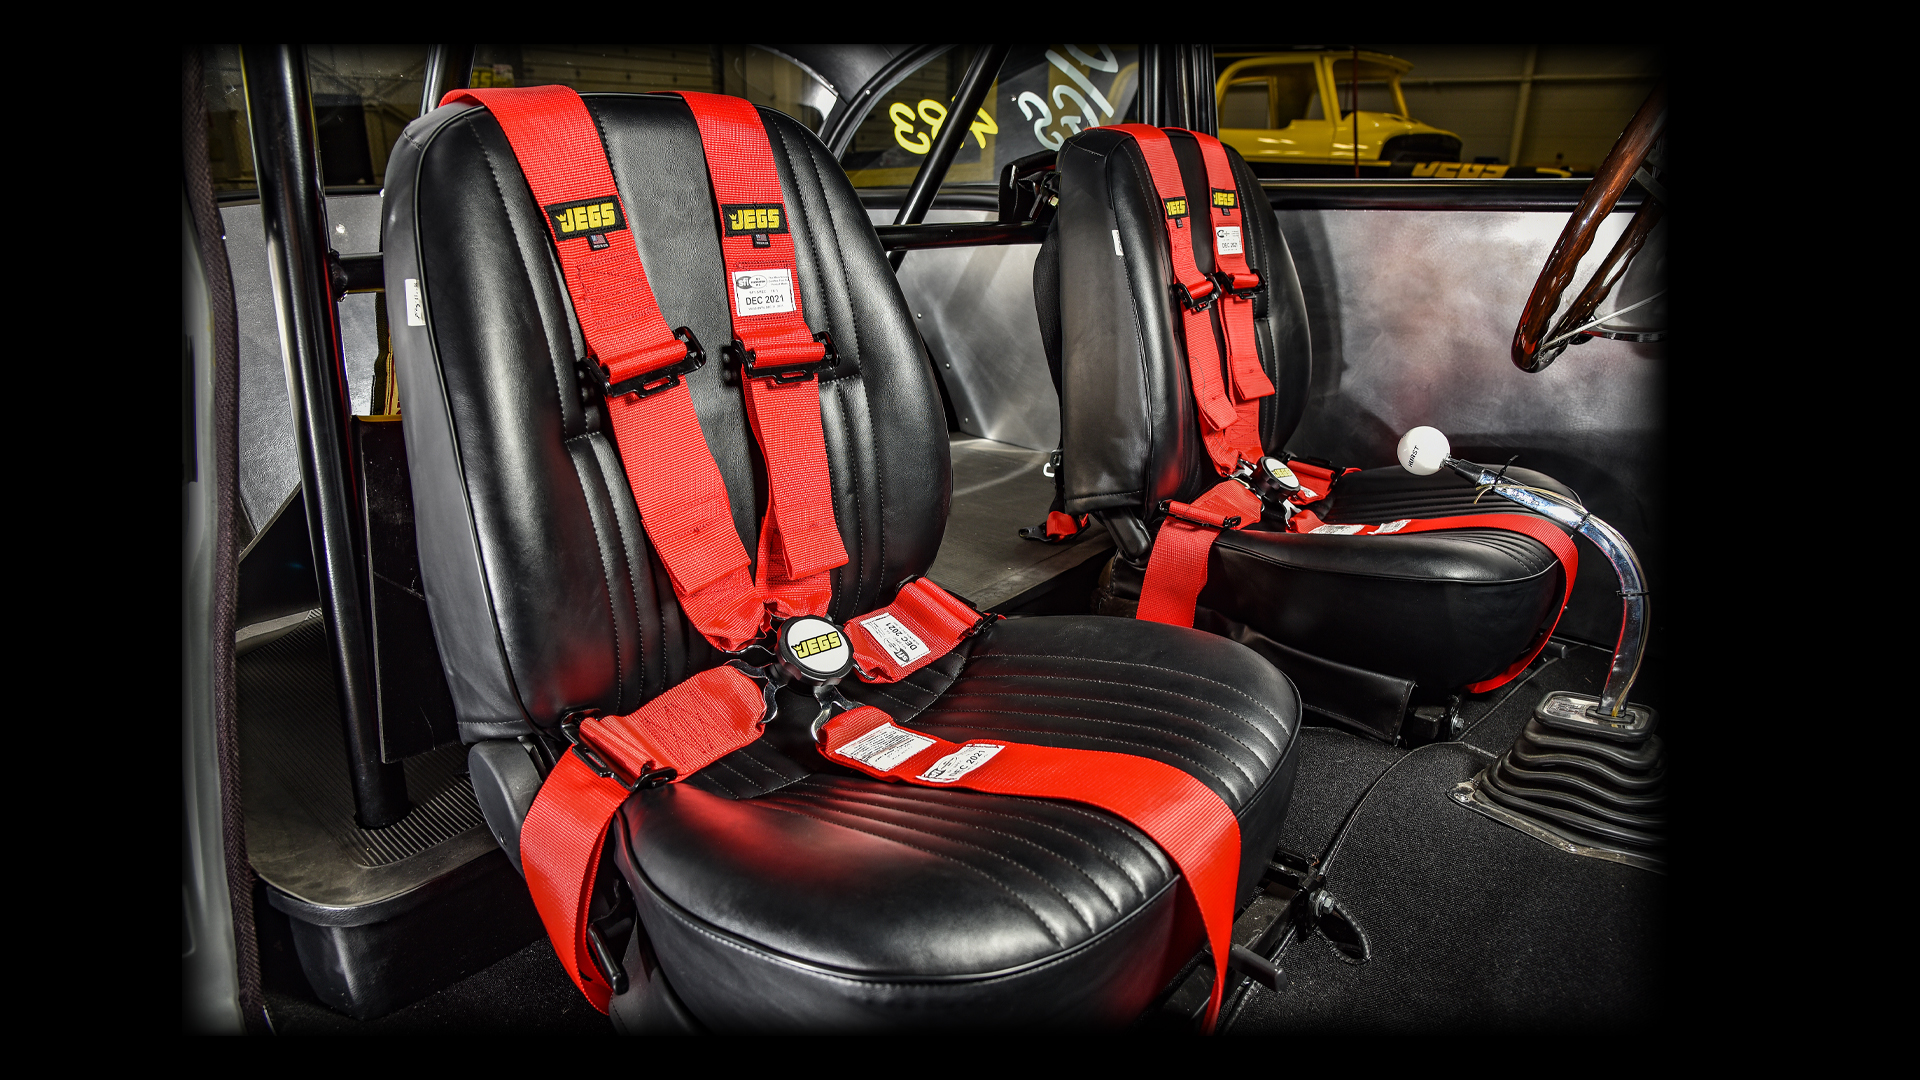 Safety Equipment, Seats & Accessories for Racing | JEGS